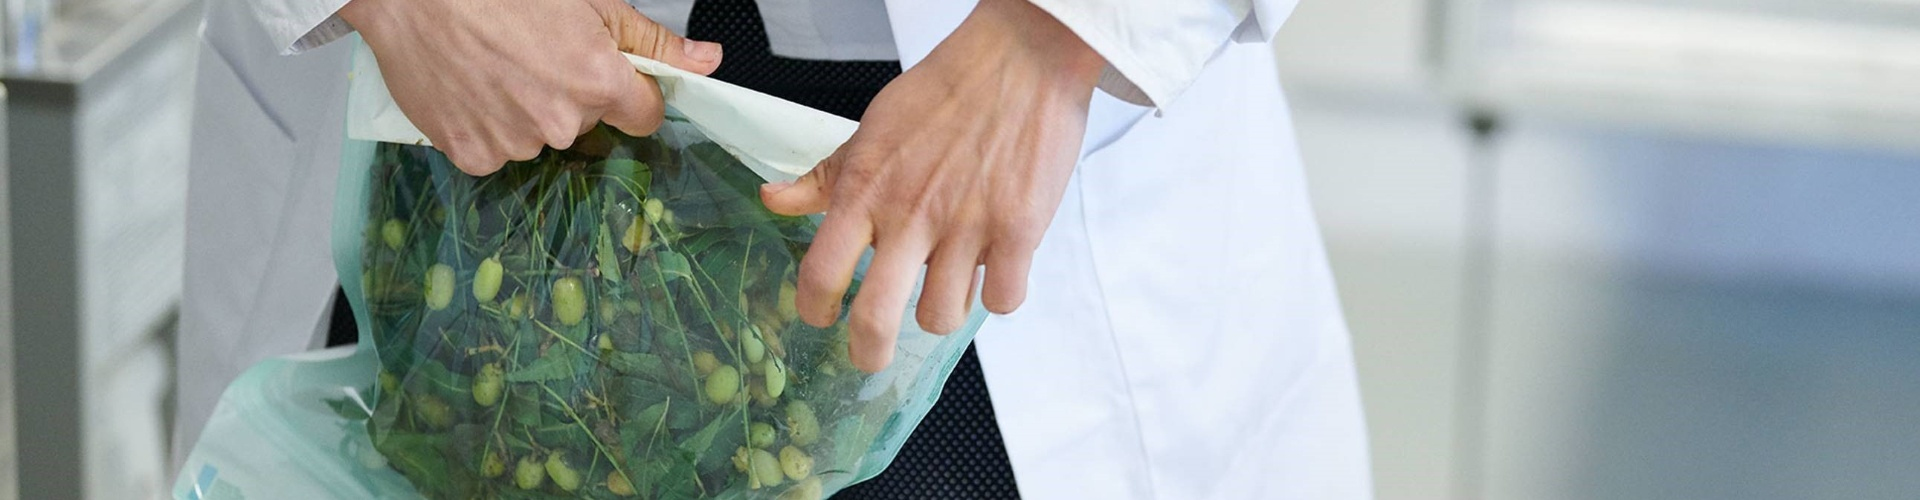 Small herbs in a sealed bag that is in development